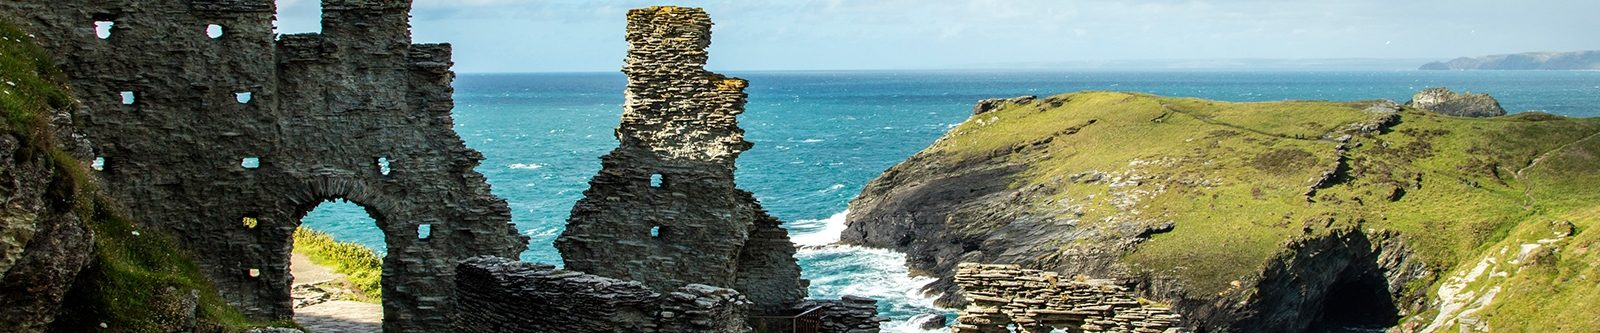 view over Tintagel Castle